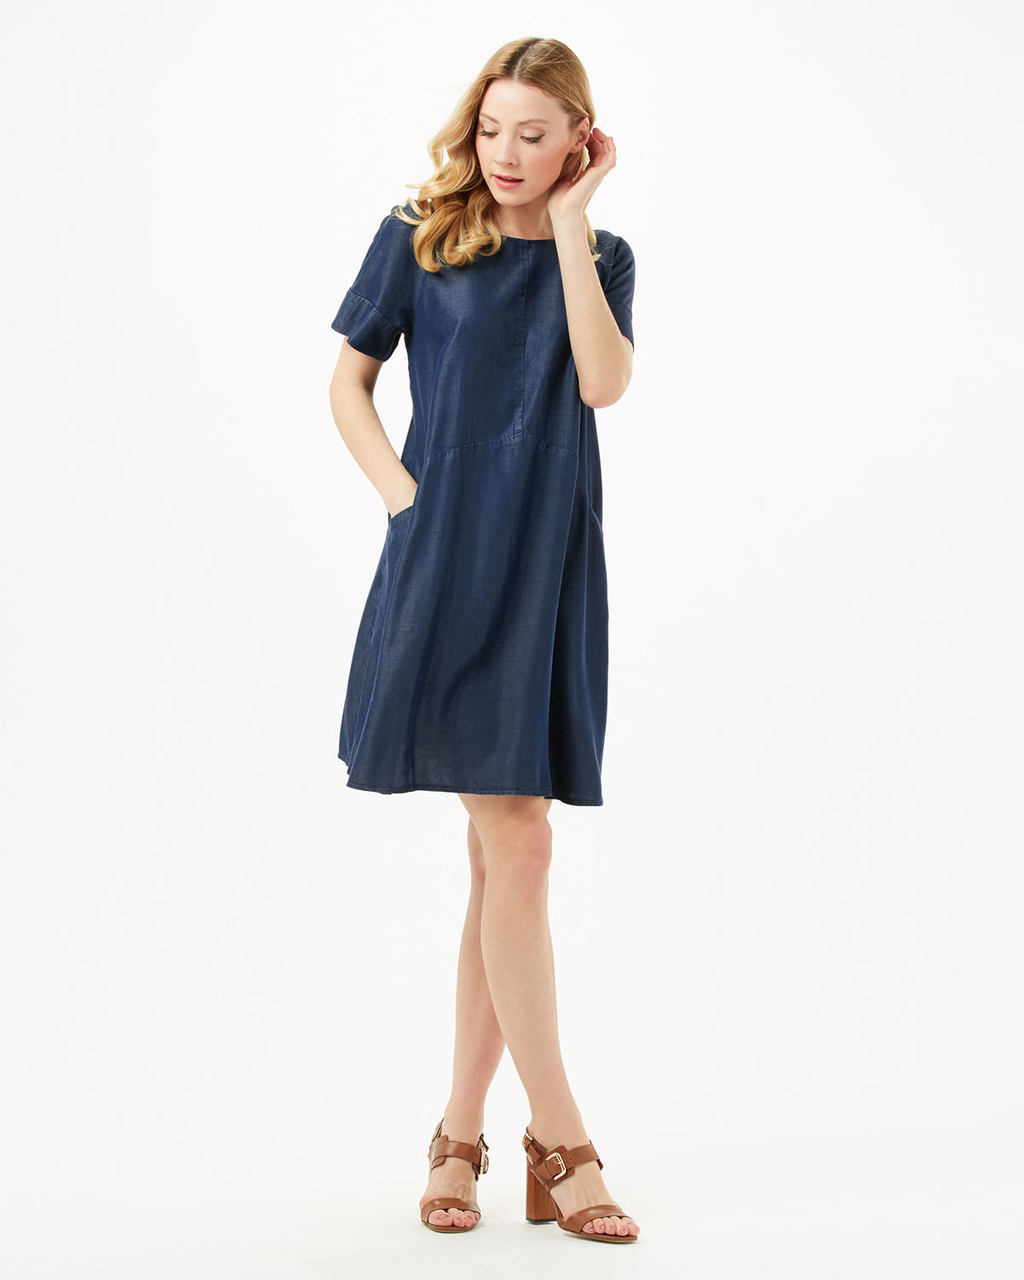 Chambray Zelda Dress - style: shift; pattern: plain; predominant colour: navy; occasions: casual; length: just above the knee; fit: soft a-line; fibres: cotton - 100%; neckline: crew; sleeve length: short sleeve; sleeve style: standard; texture group: denim; pattern type: fabric; season: s/s 2016; wardrobe: basic